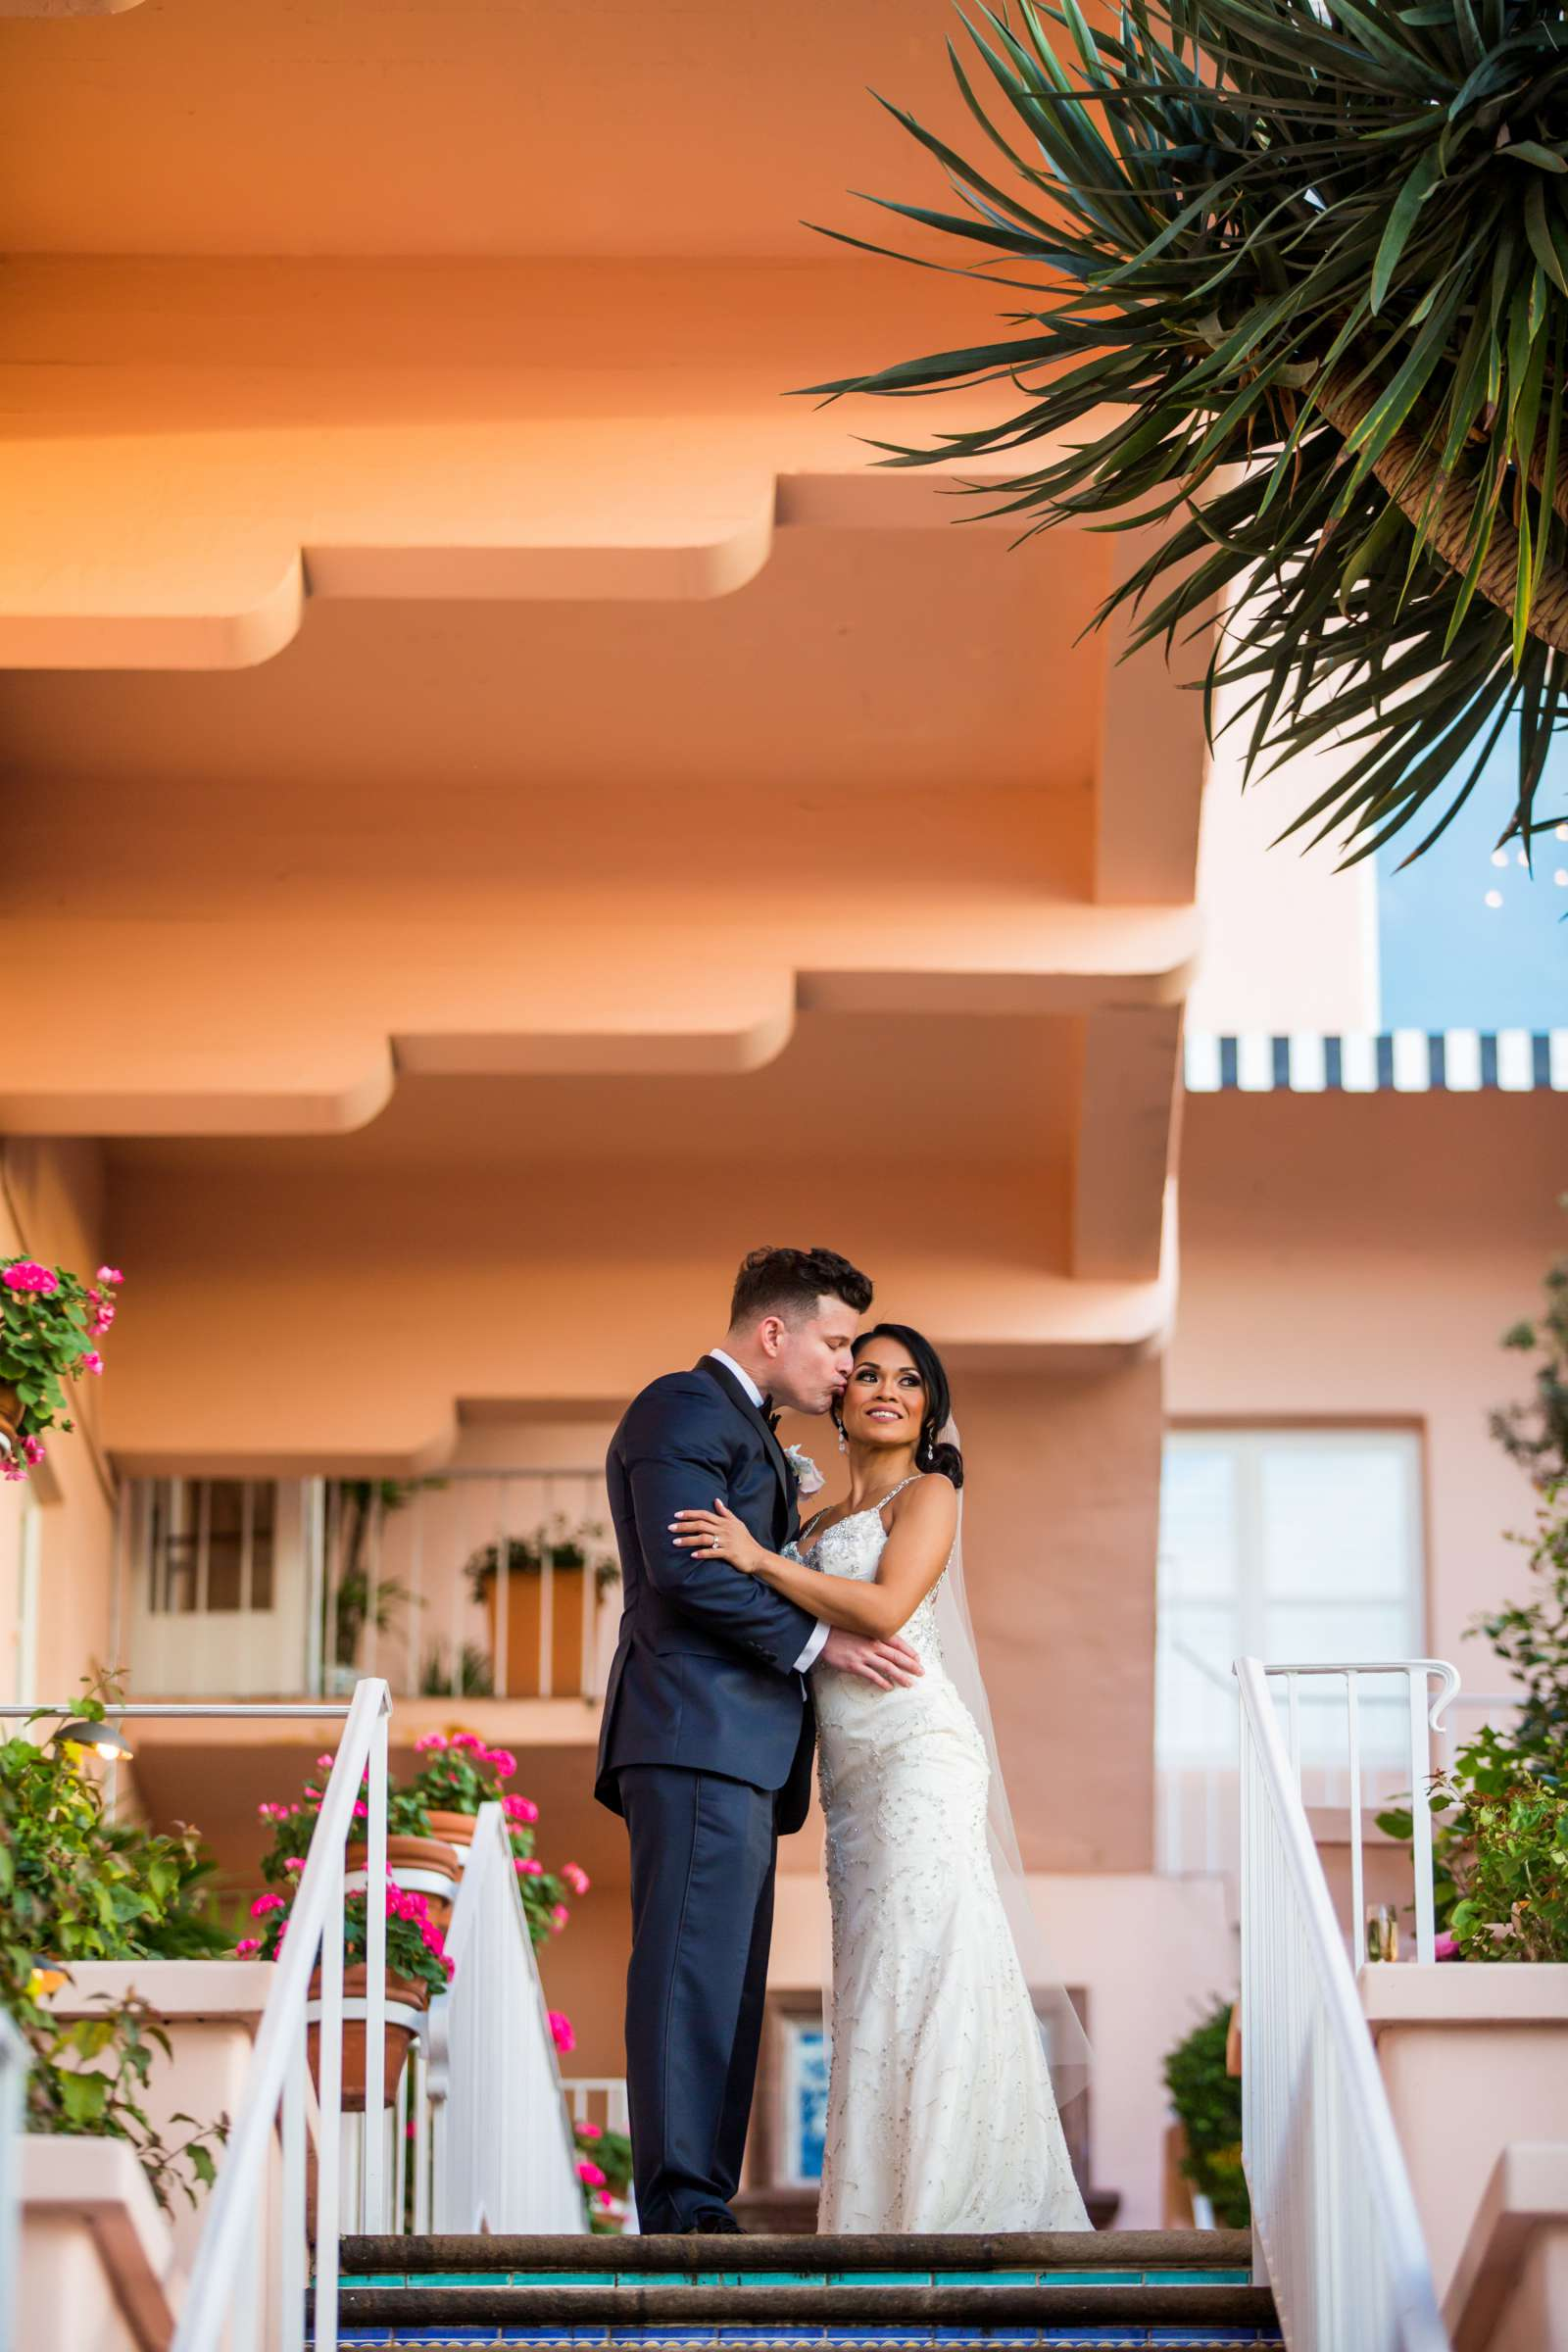 La Valencia Wedding, Michelle and James Wedding Photo #1 by True Photography